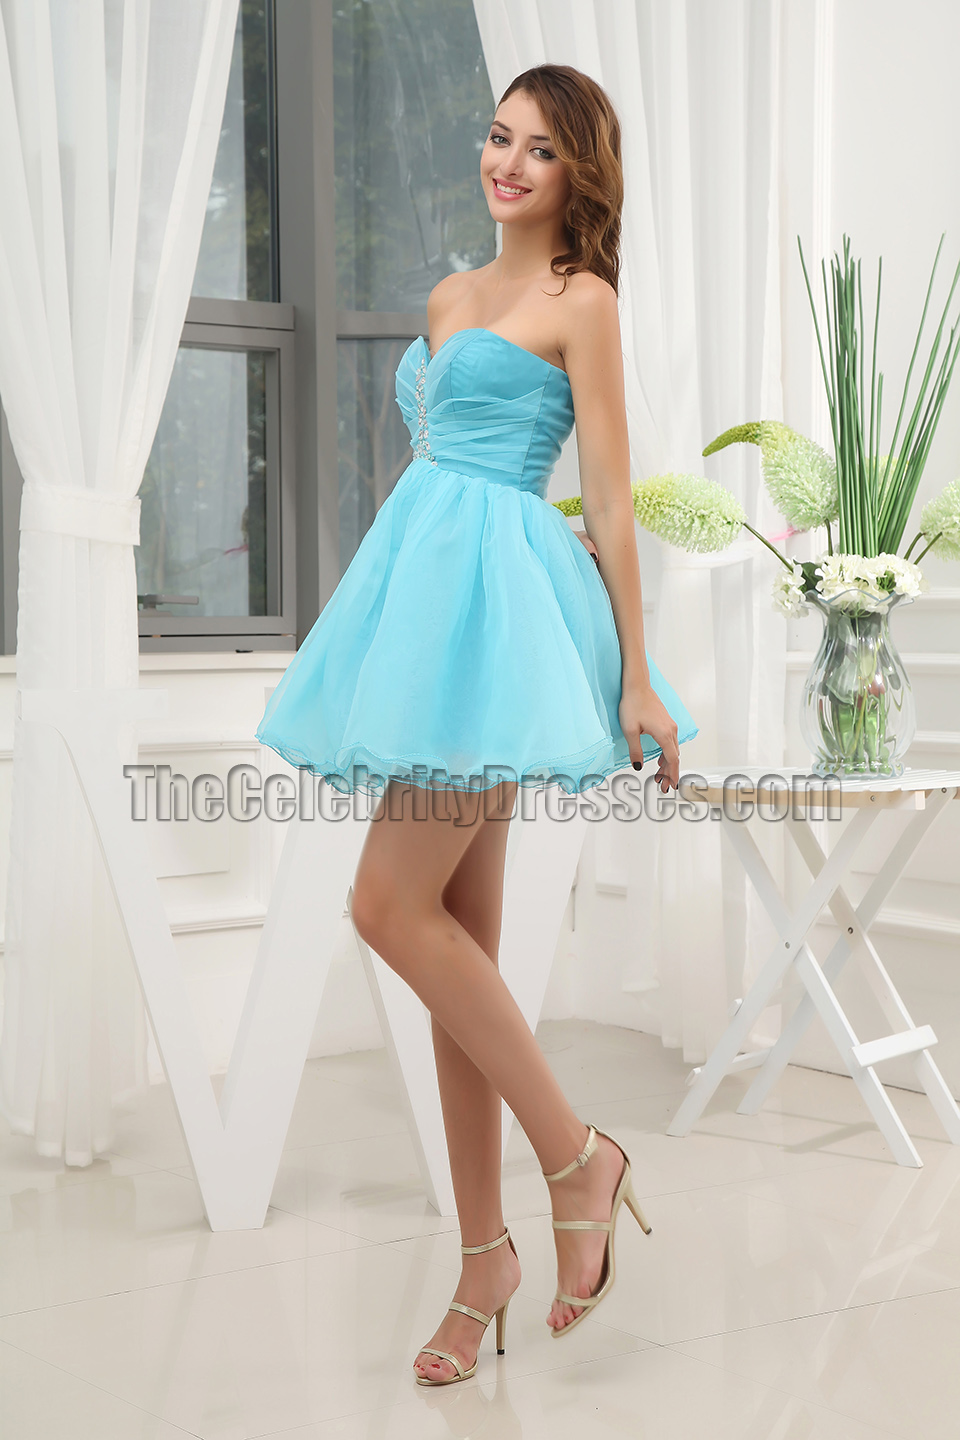 Cute Blue Strapless Short Mini Party Dress Homecoming ...